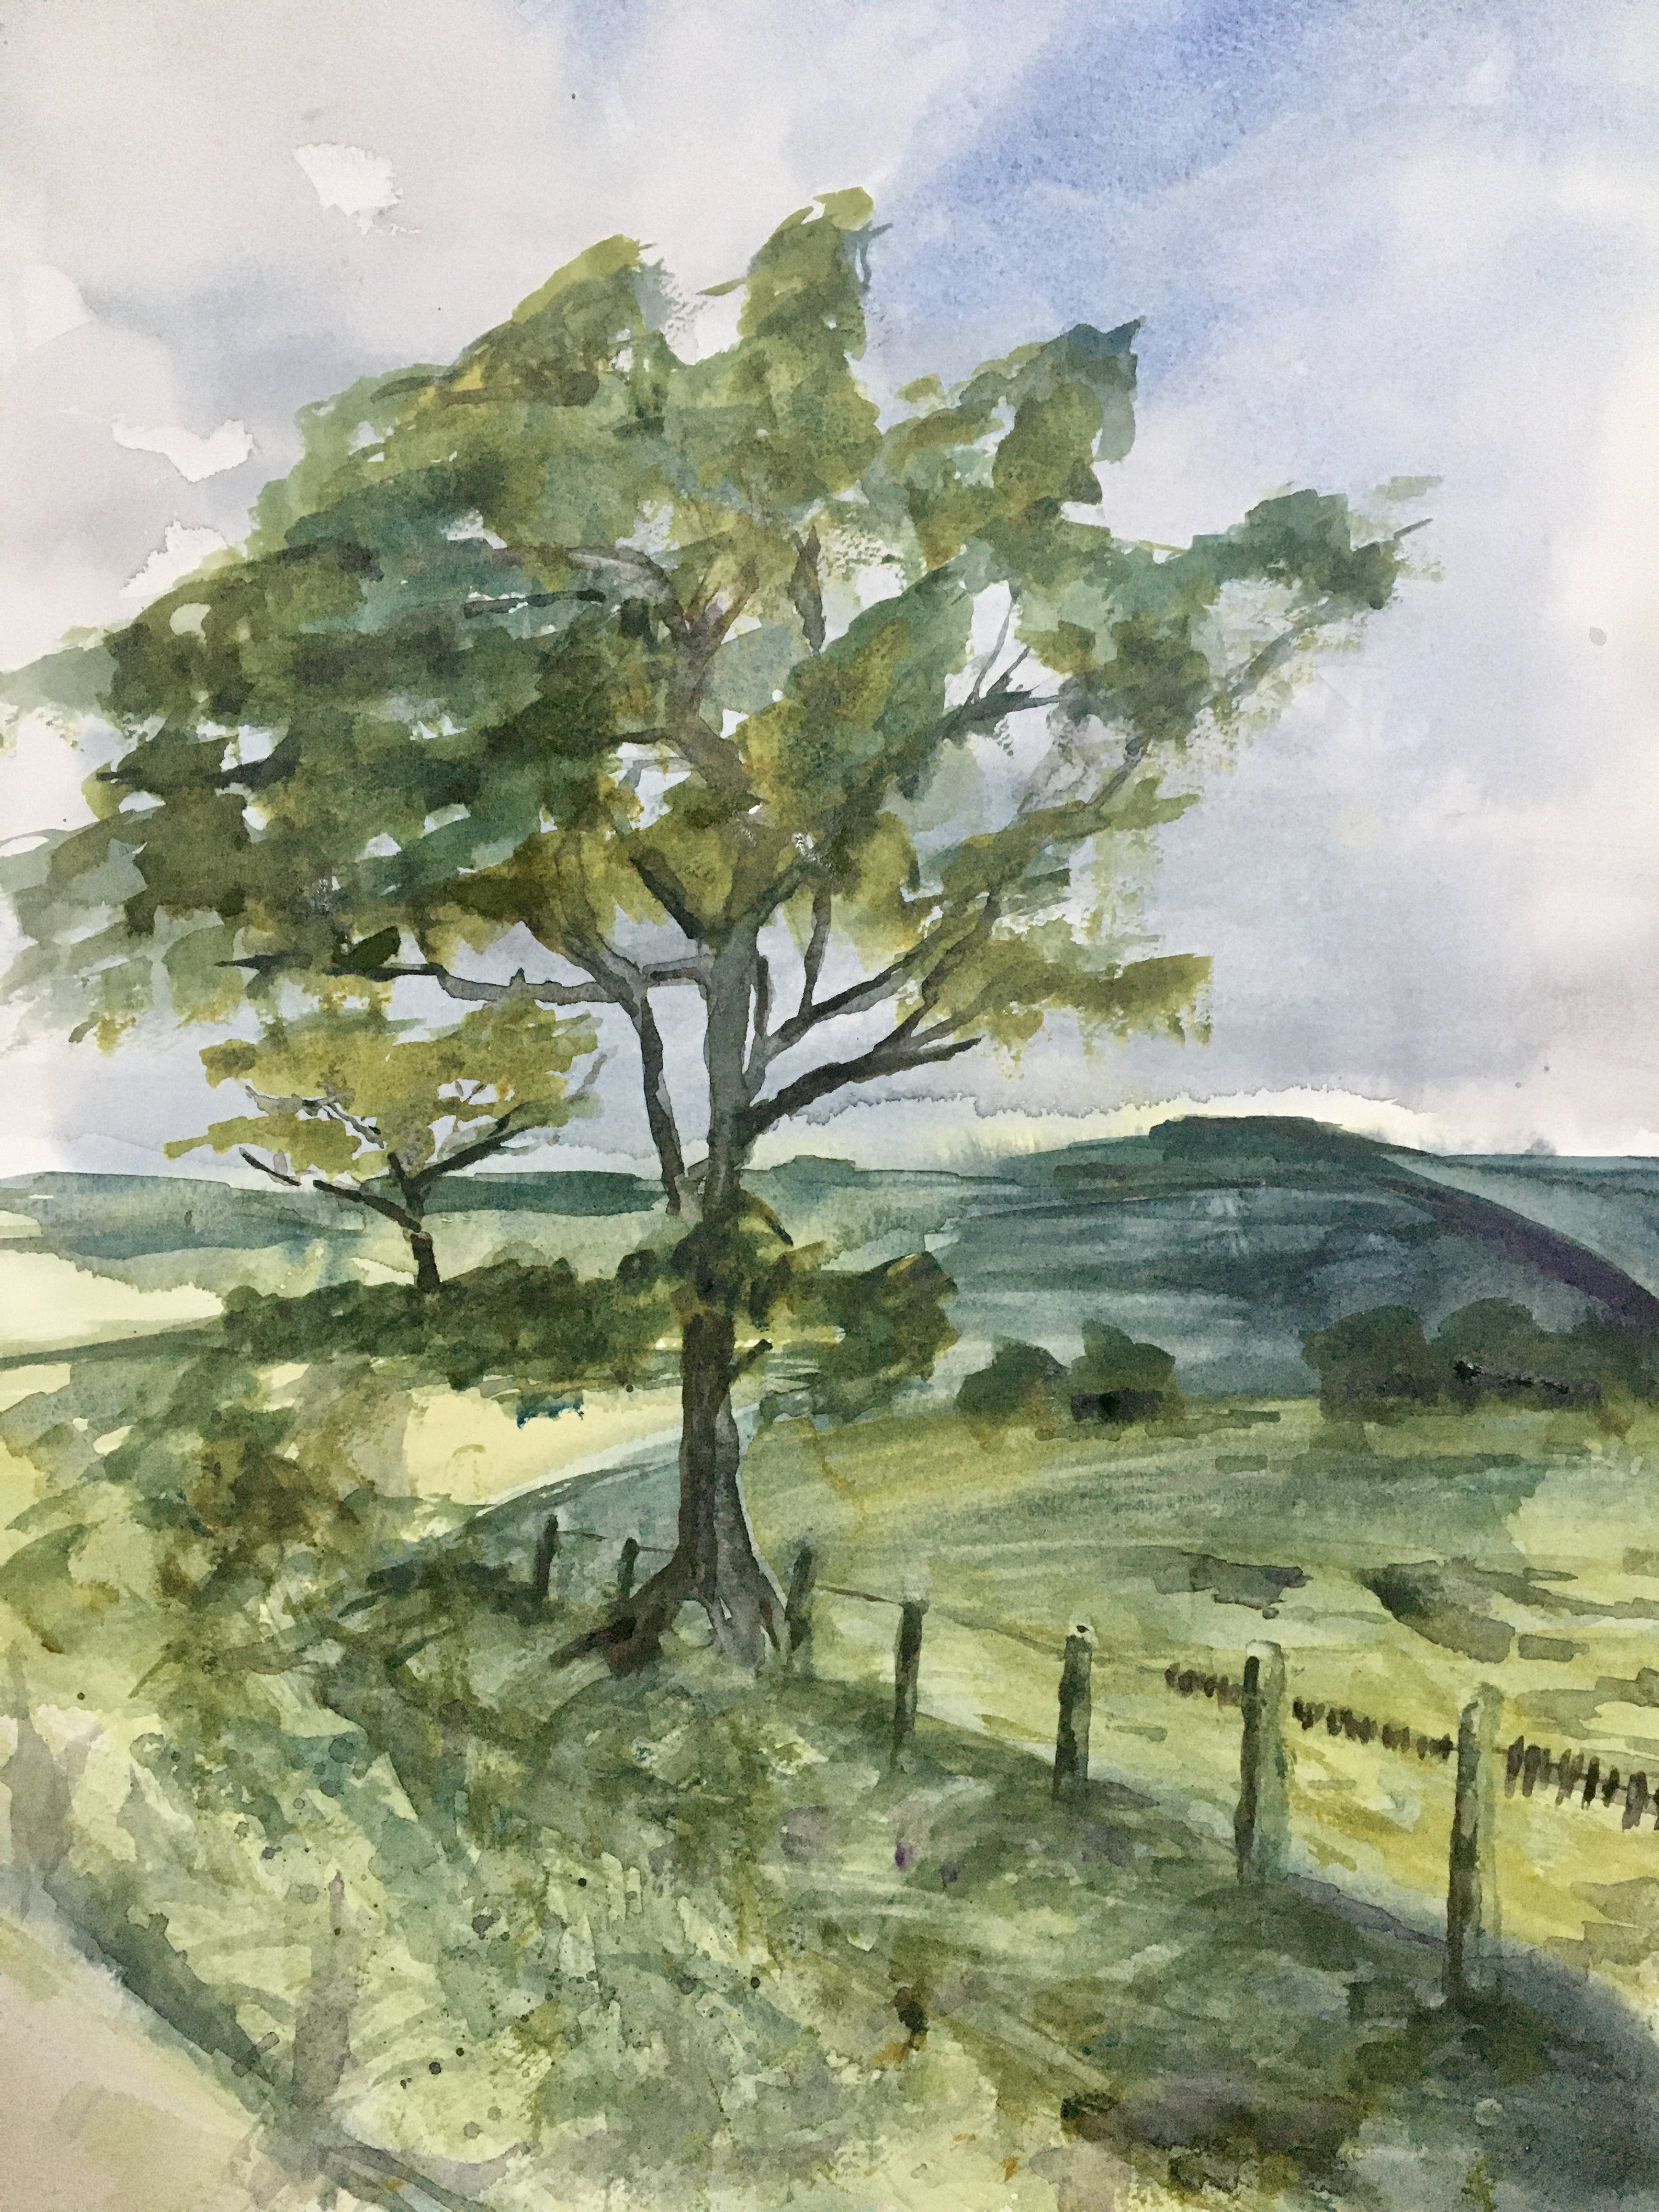 Watercolour of Northumberland country scene with a tree on a lane